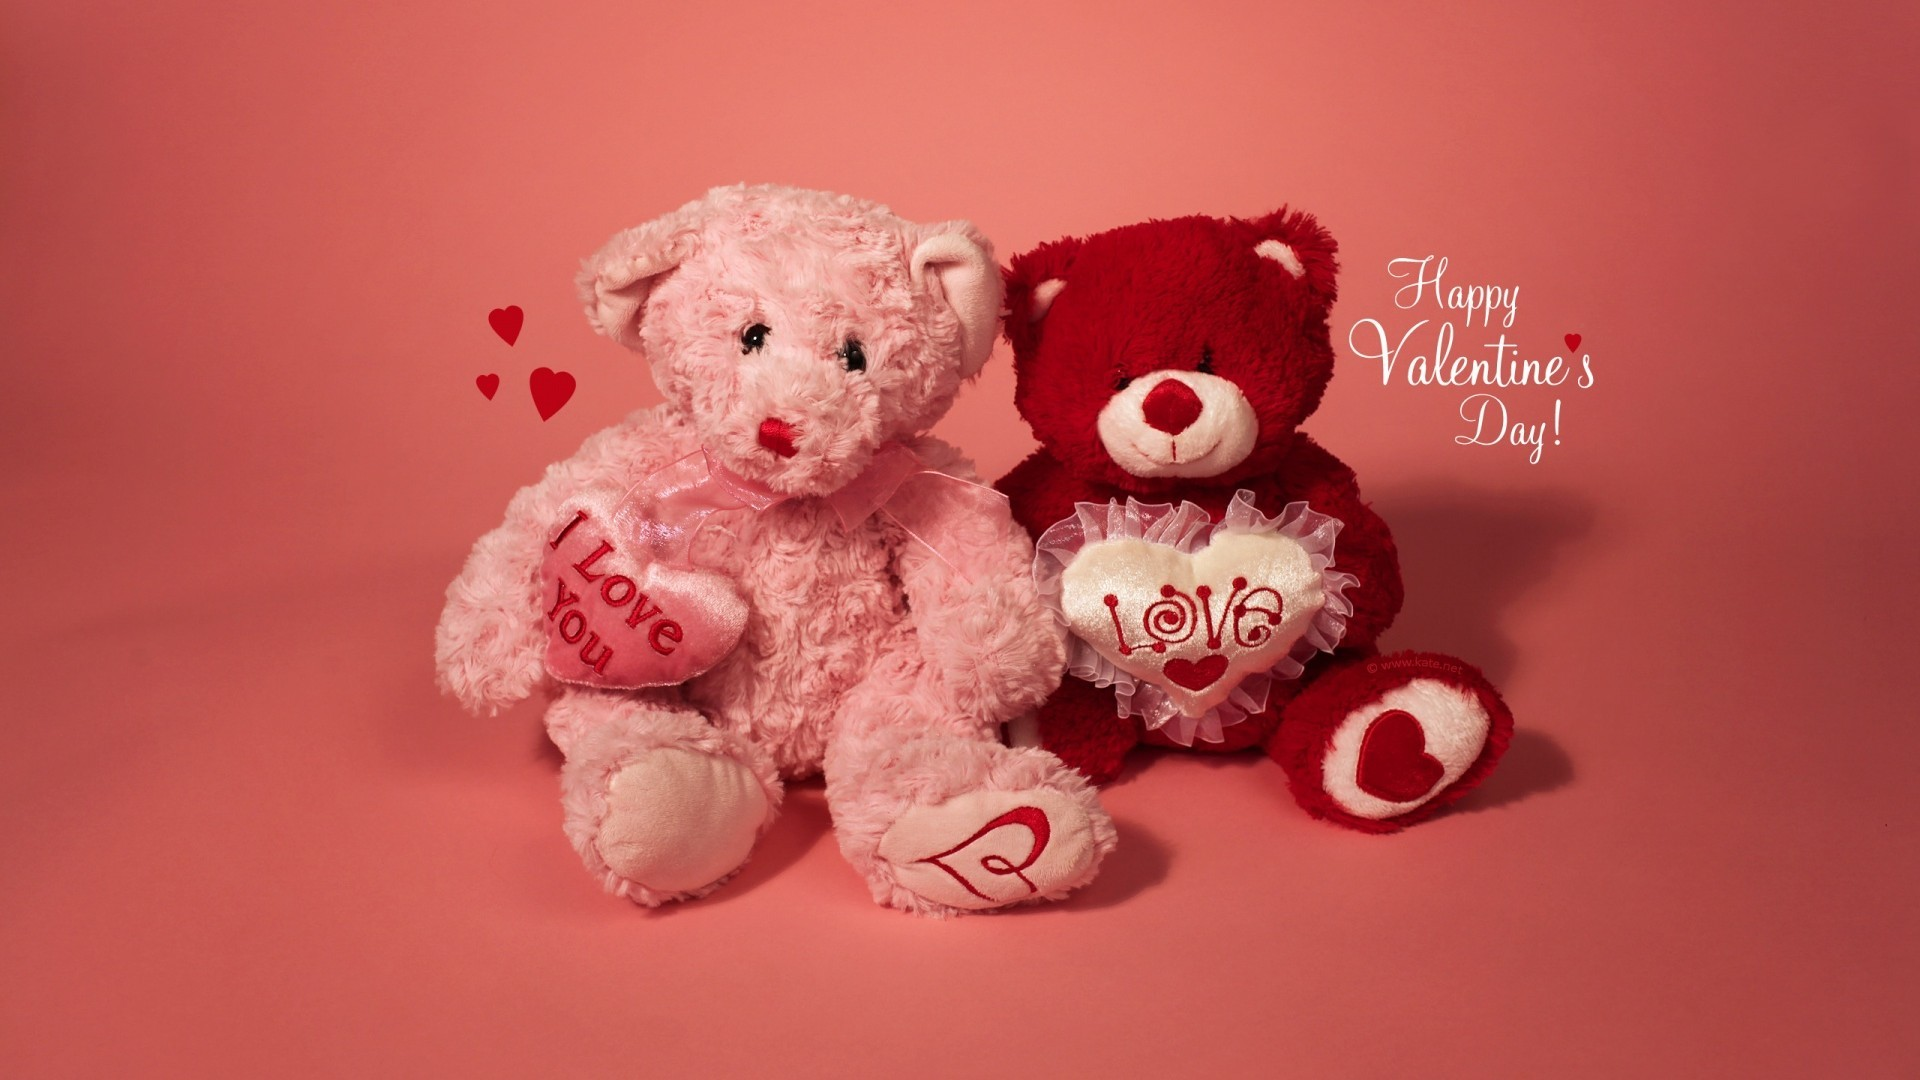 1920x1080 Free Download Valentines Day Teddy Bear Wallpaper - Valentines Day Teddy  Bear Wallpaper for Desktop.